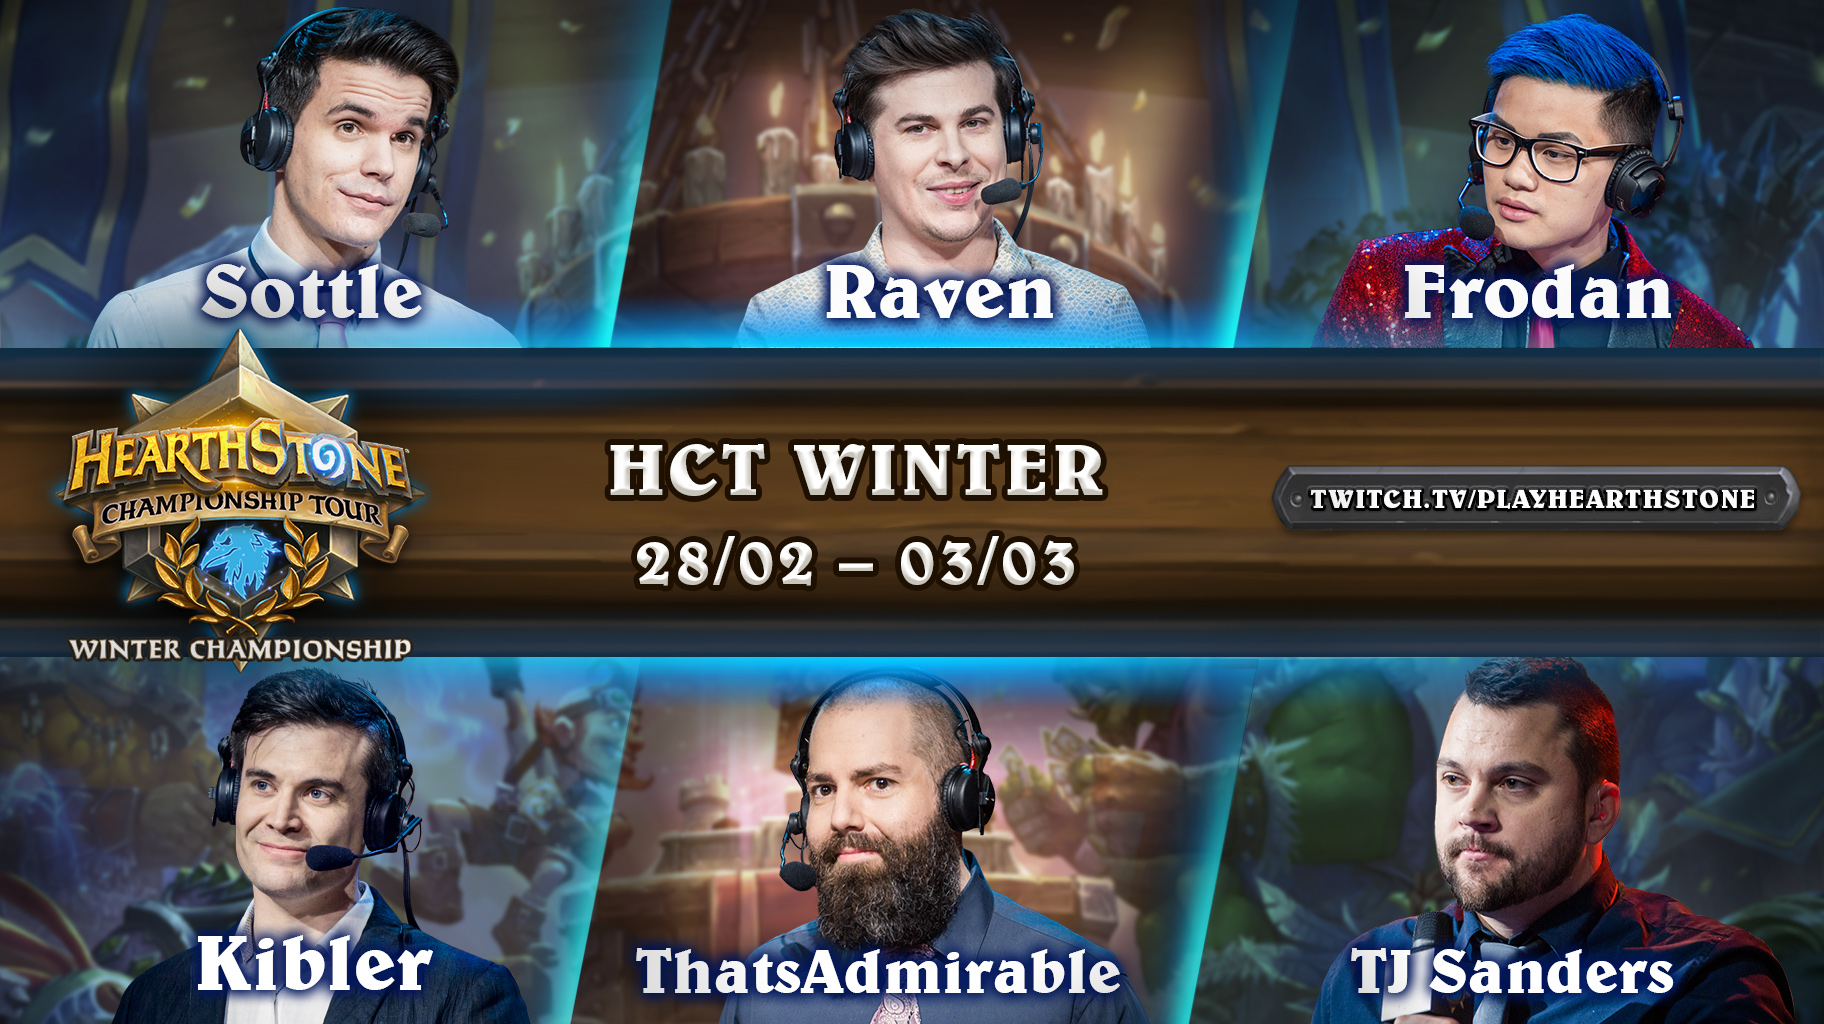 HCTWinter_HS_Social_LW_855x480.png